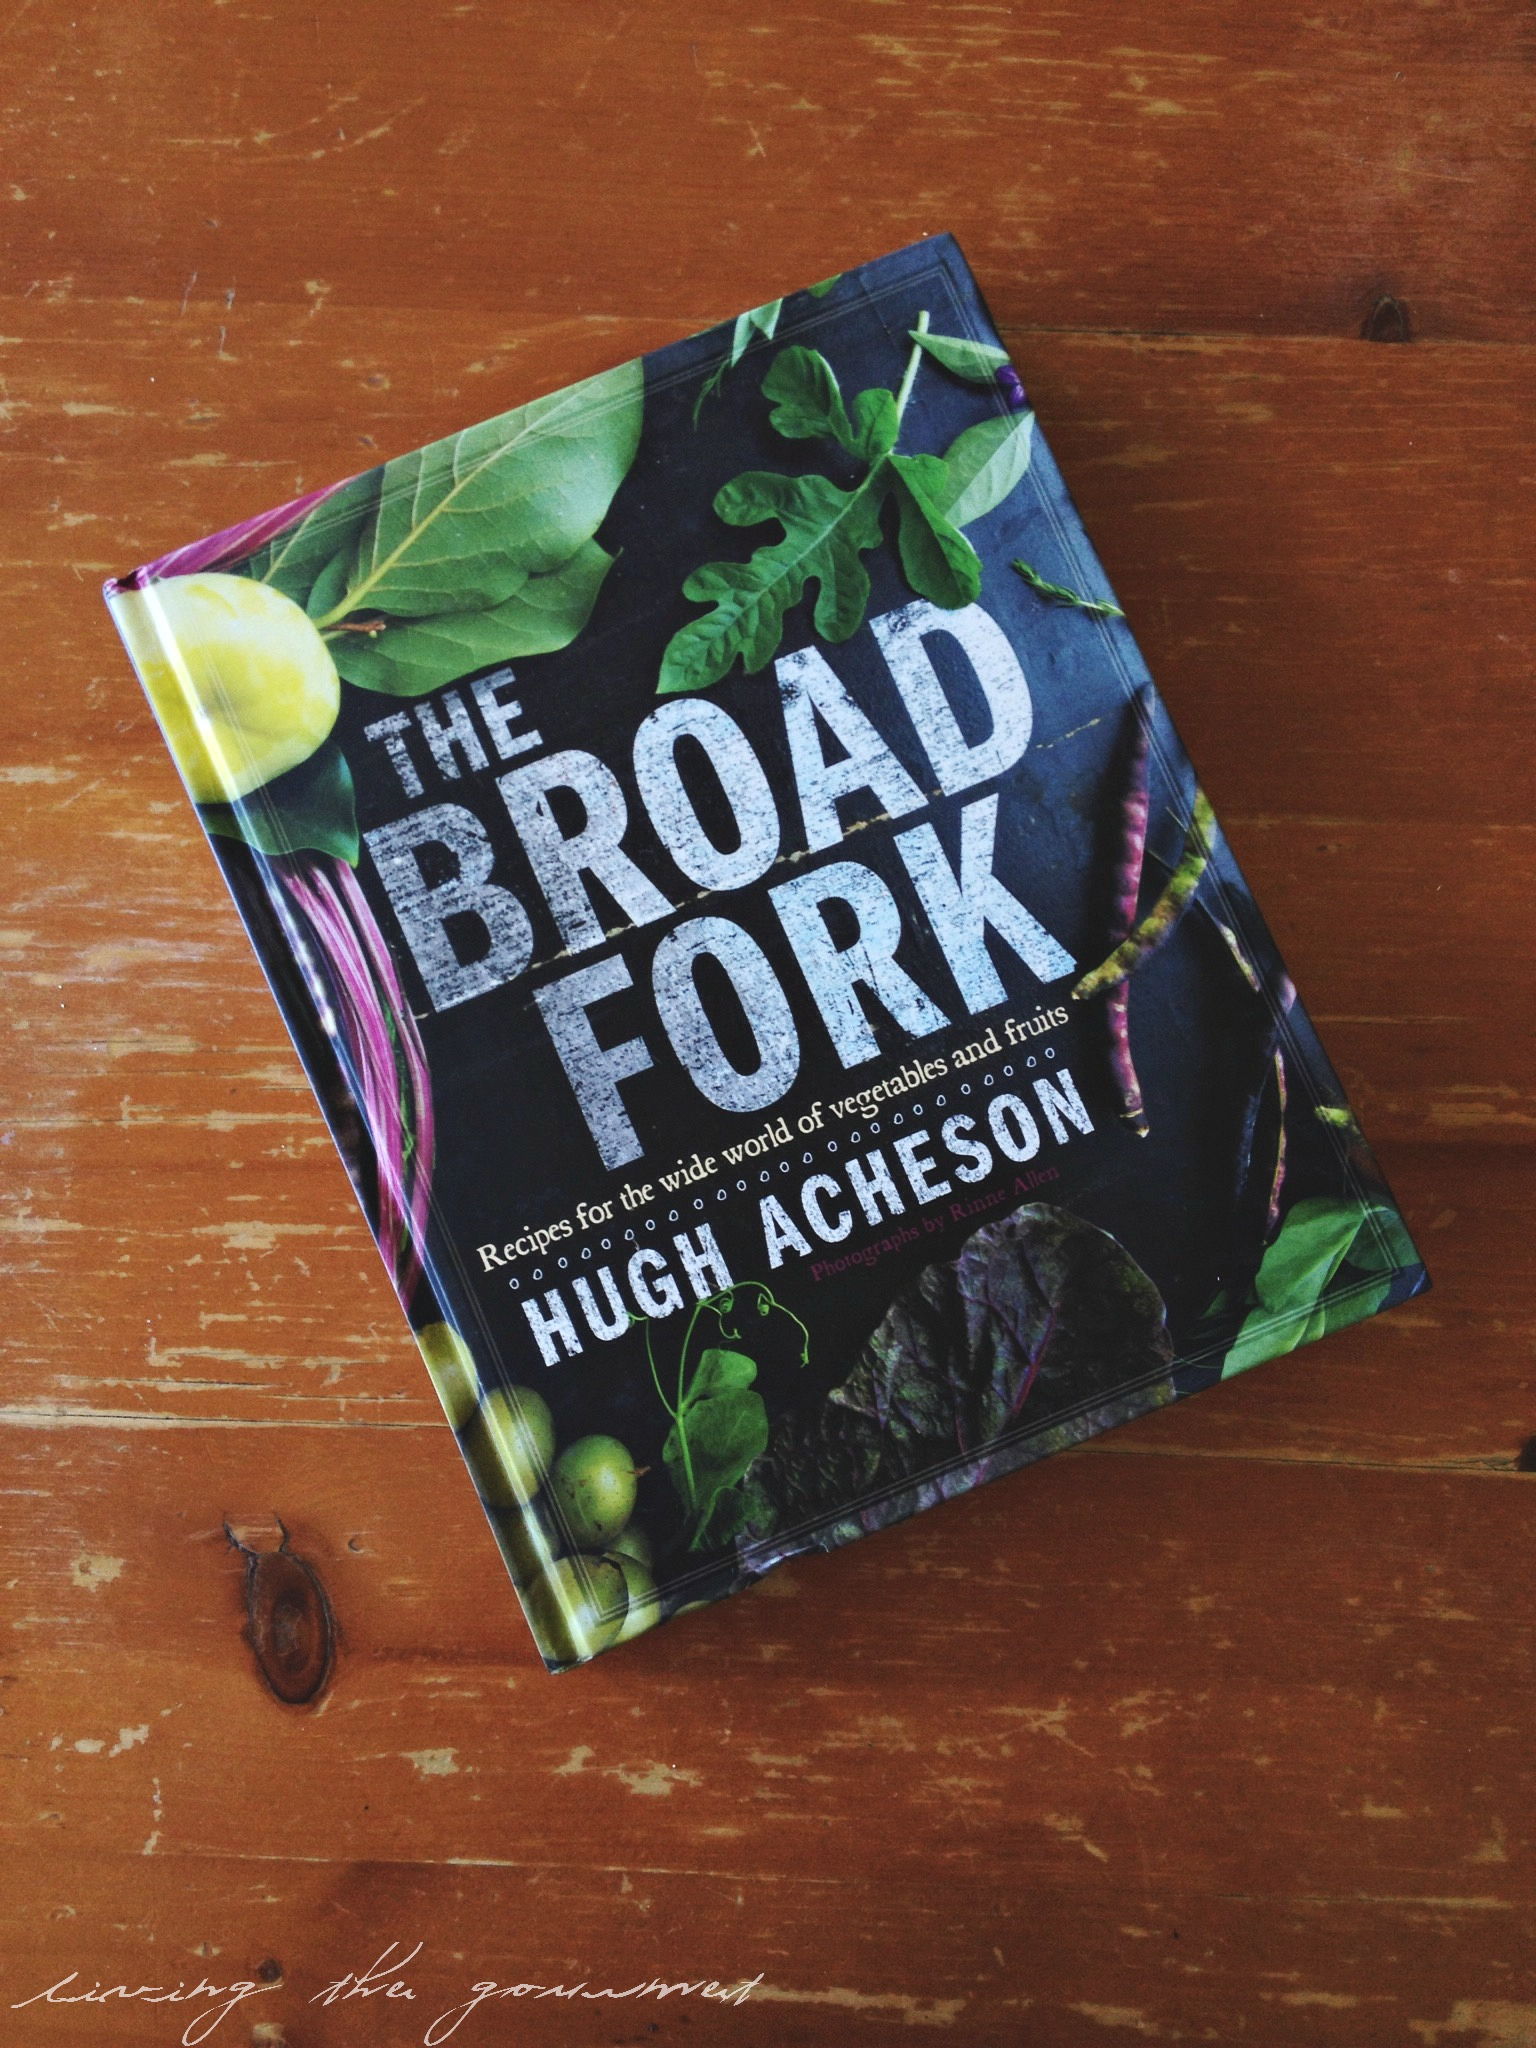 Living the Gourmet: The Broad Fork w/ Hugh Acheson